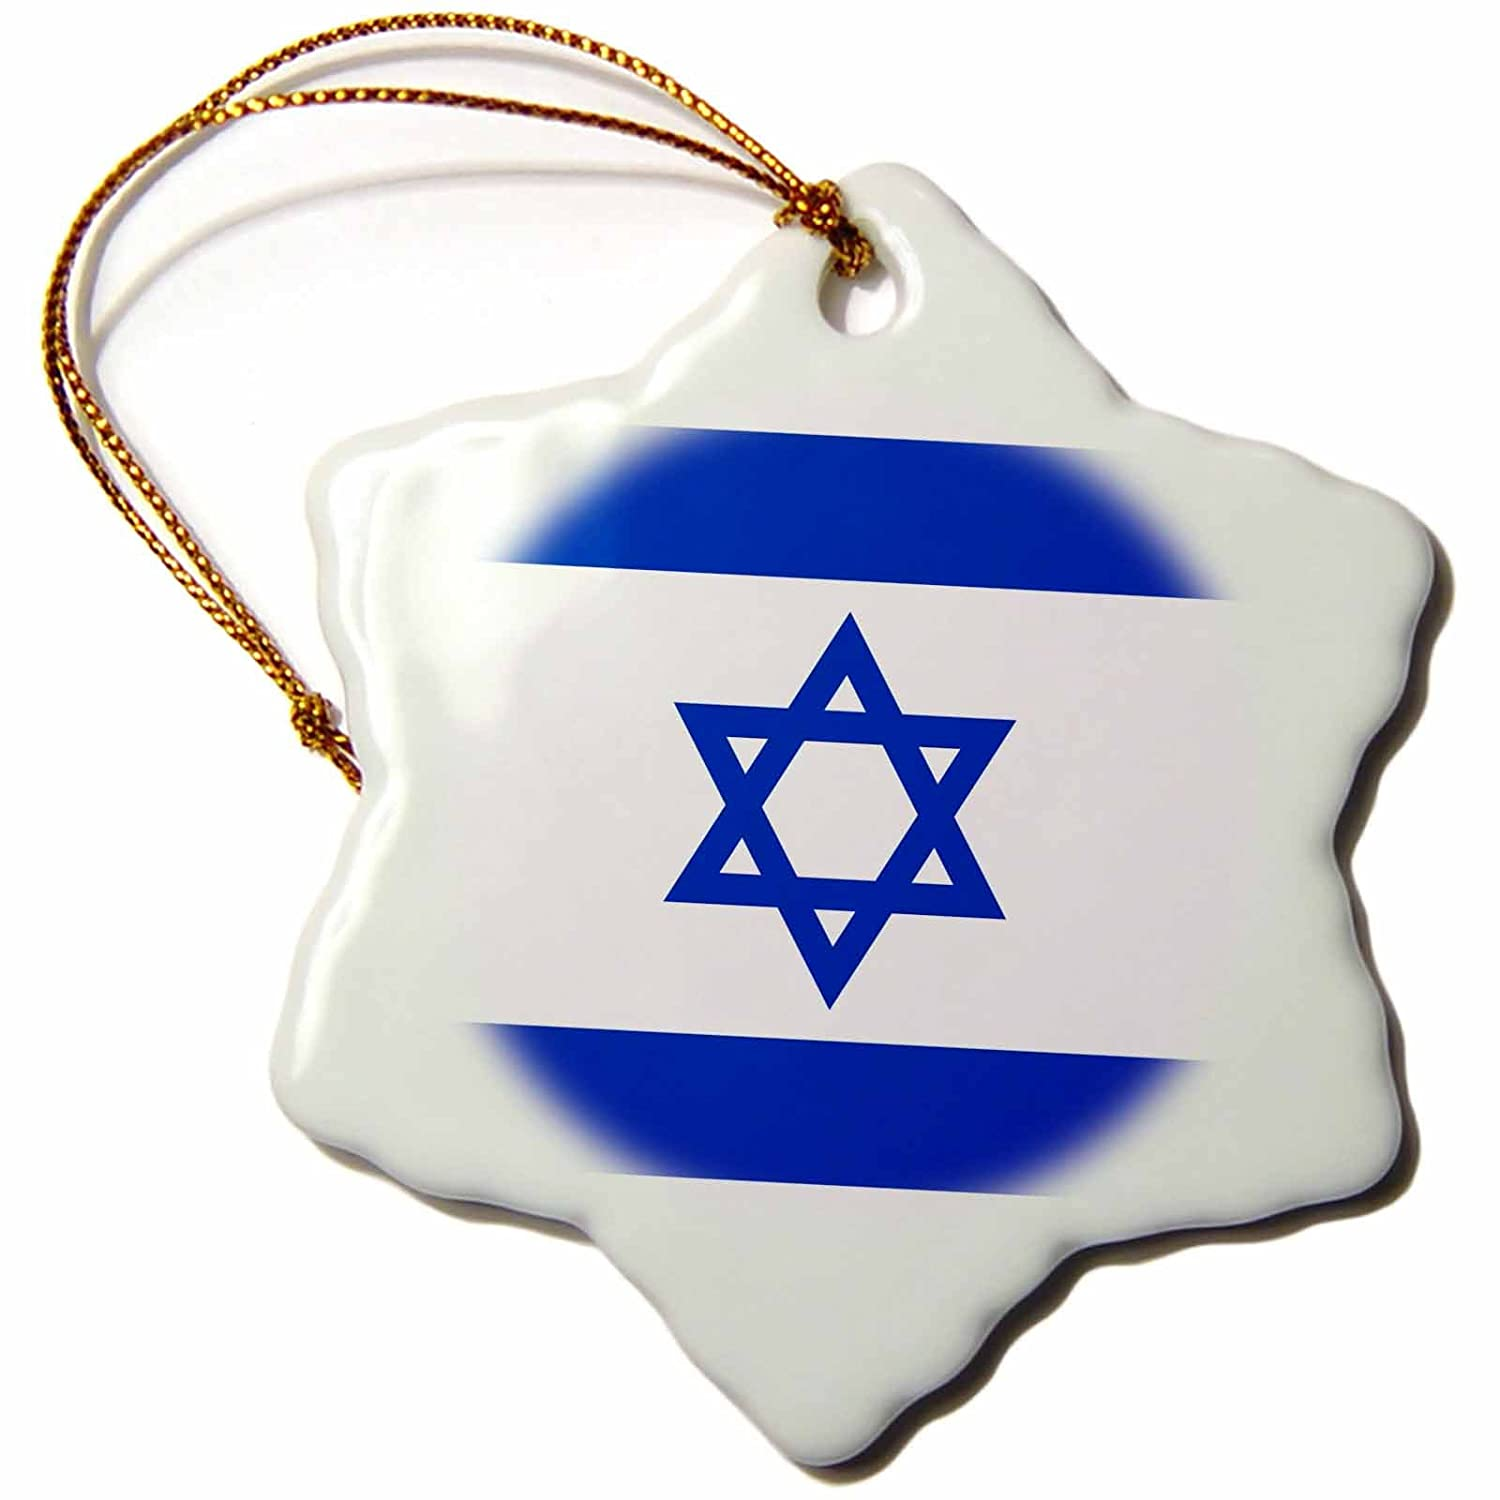 Judaism 3dRose InspirationzStore Flags Jewish state of Israel 3 inch Snowflake Porcelain Ornament Israeli flag Blue and white with magen david star orn/_151420/_1 Zionism